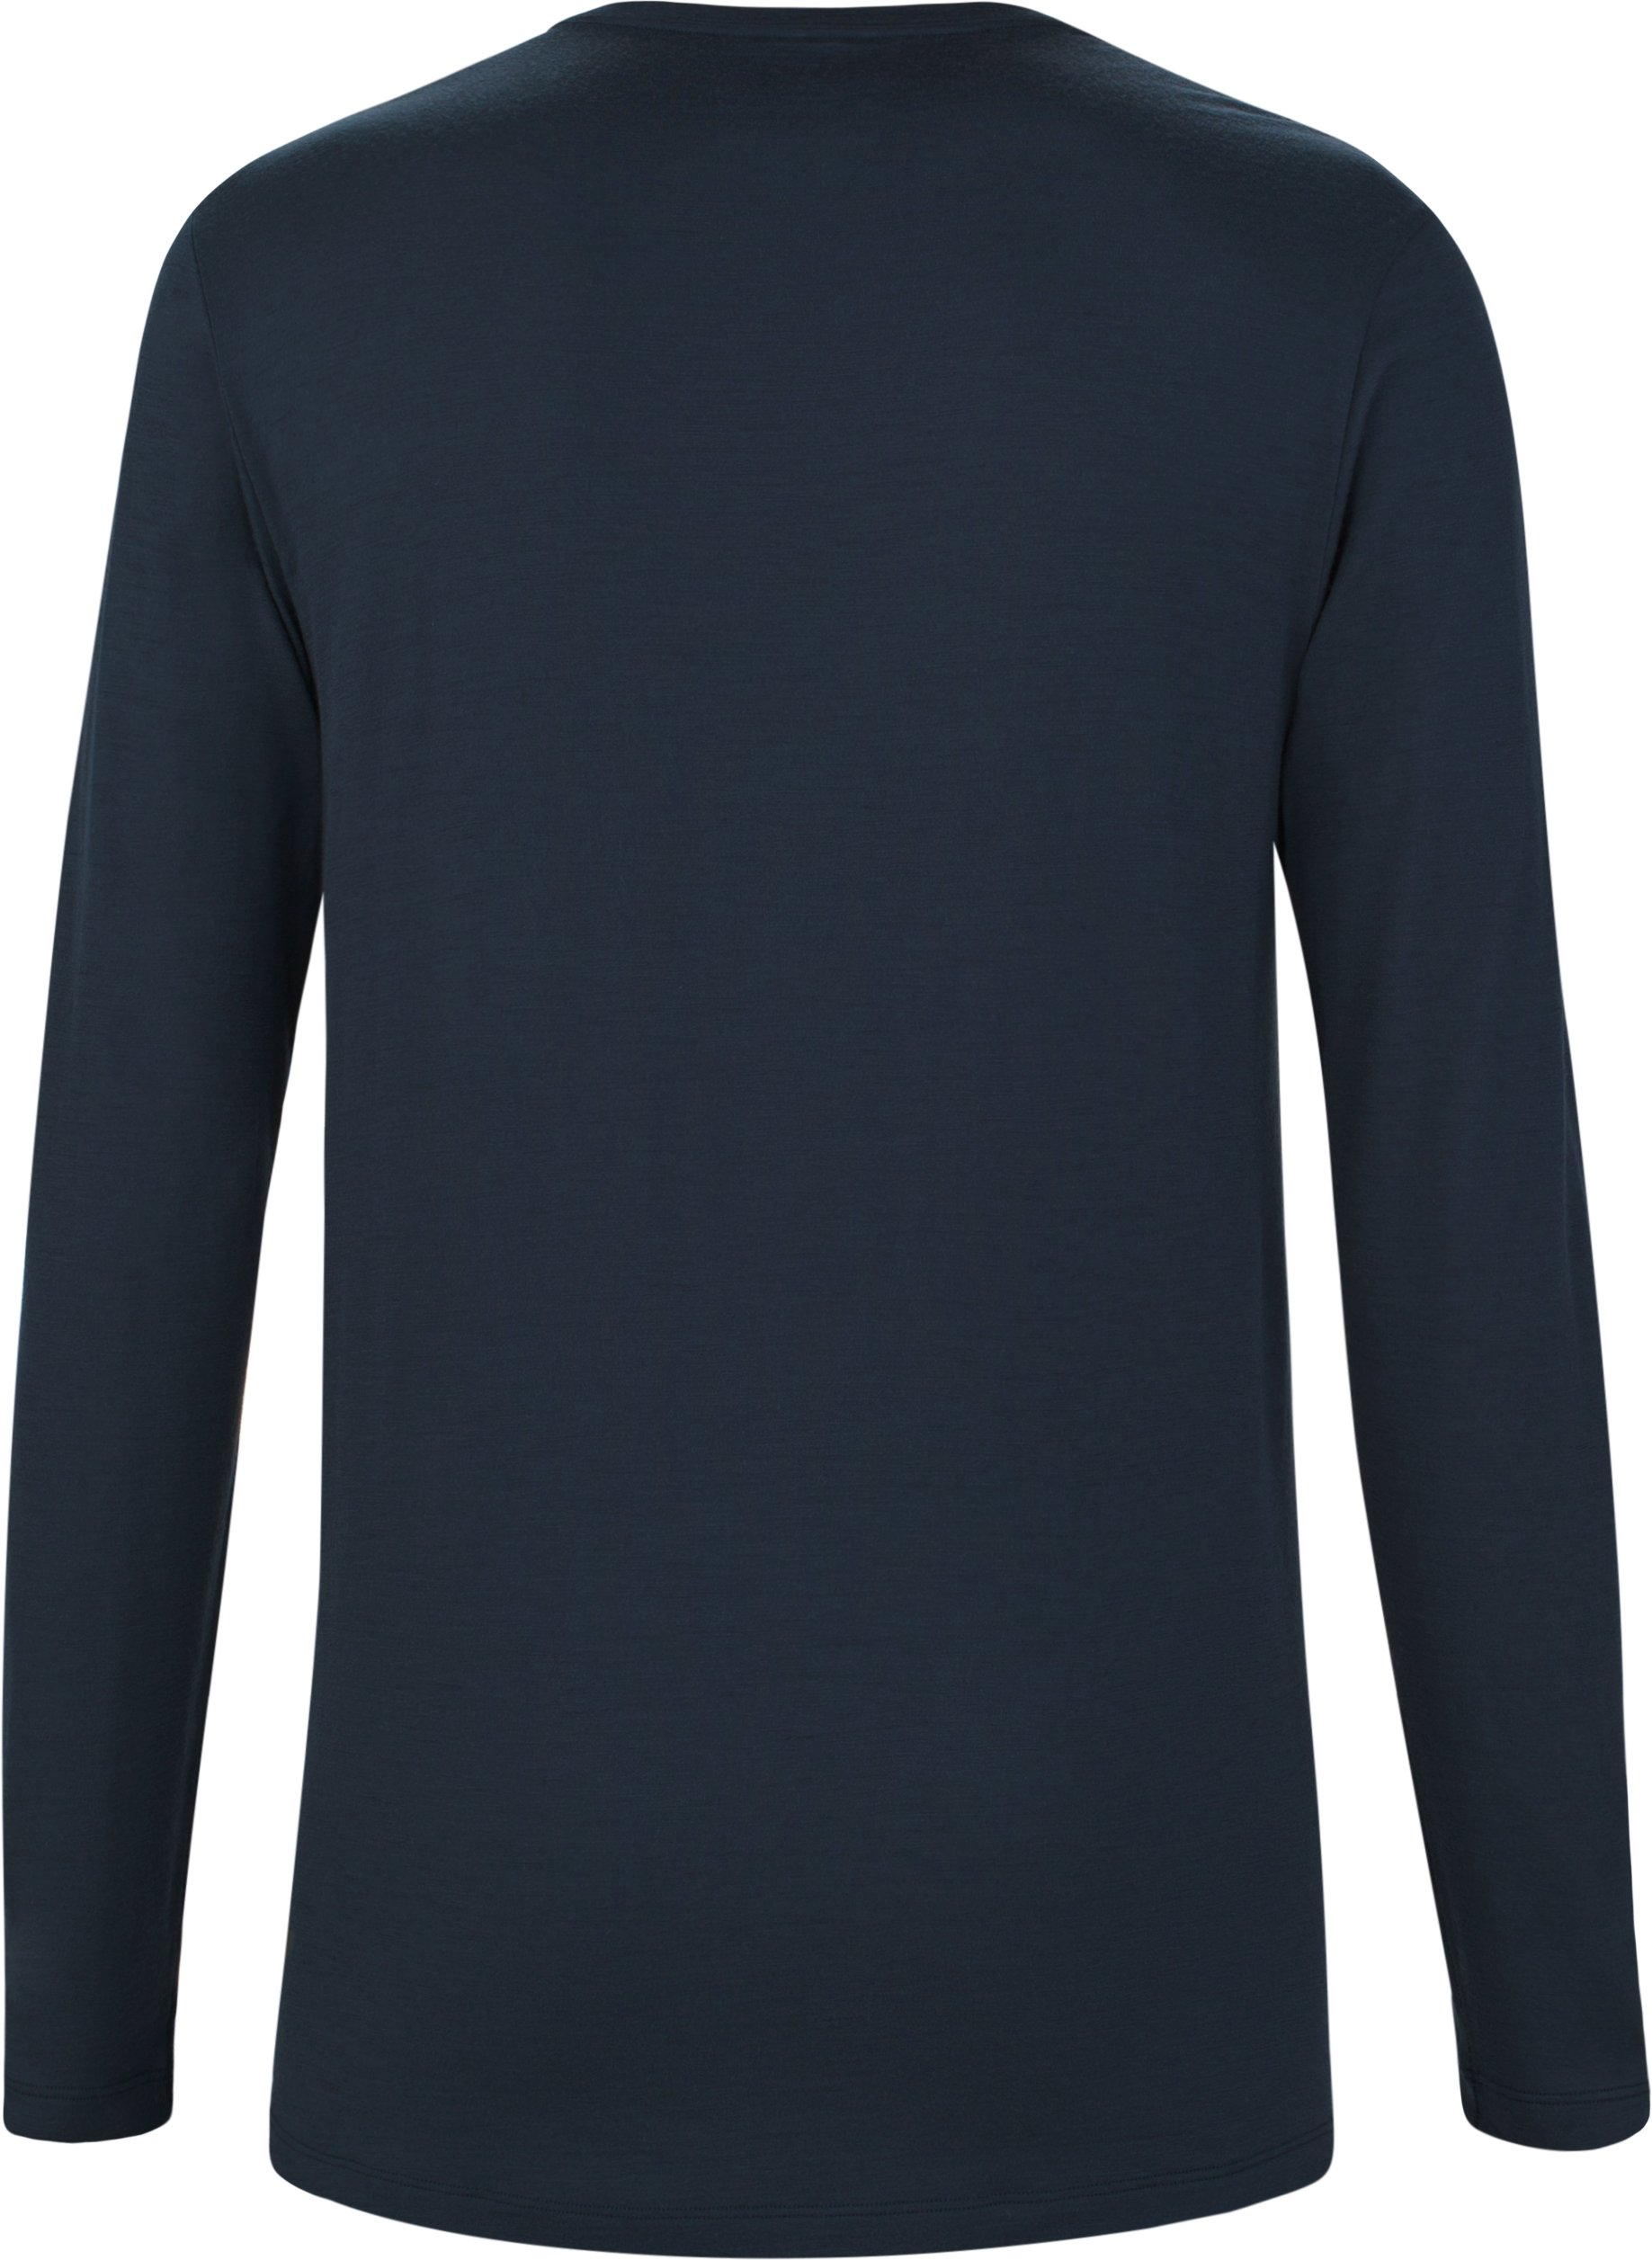 Men's Prime Long Sleeve Crew, Navy